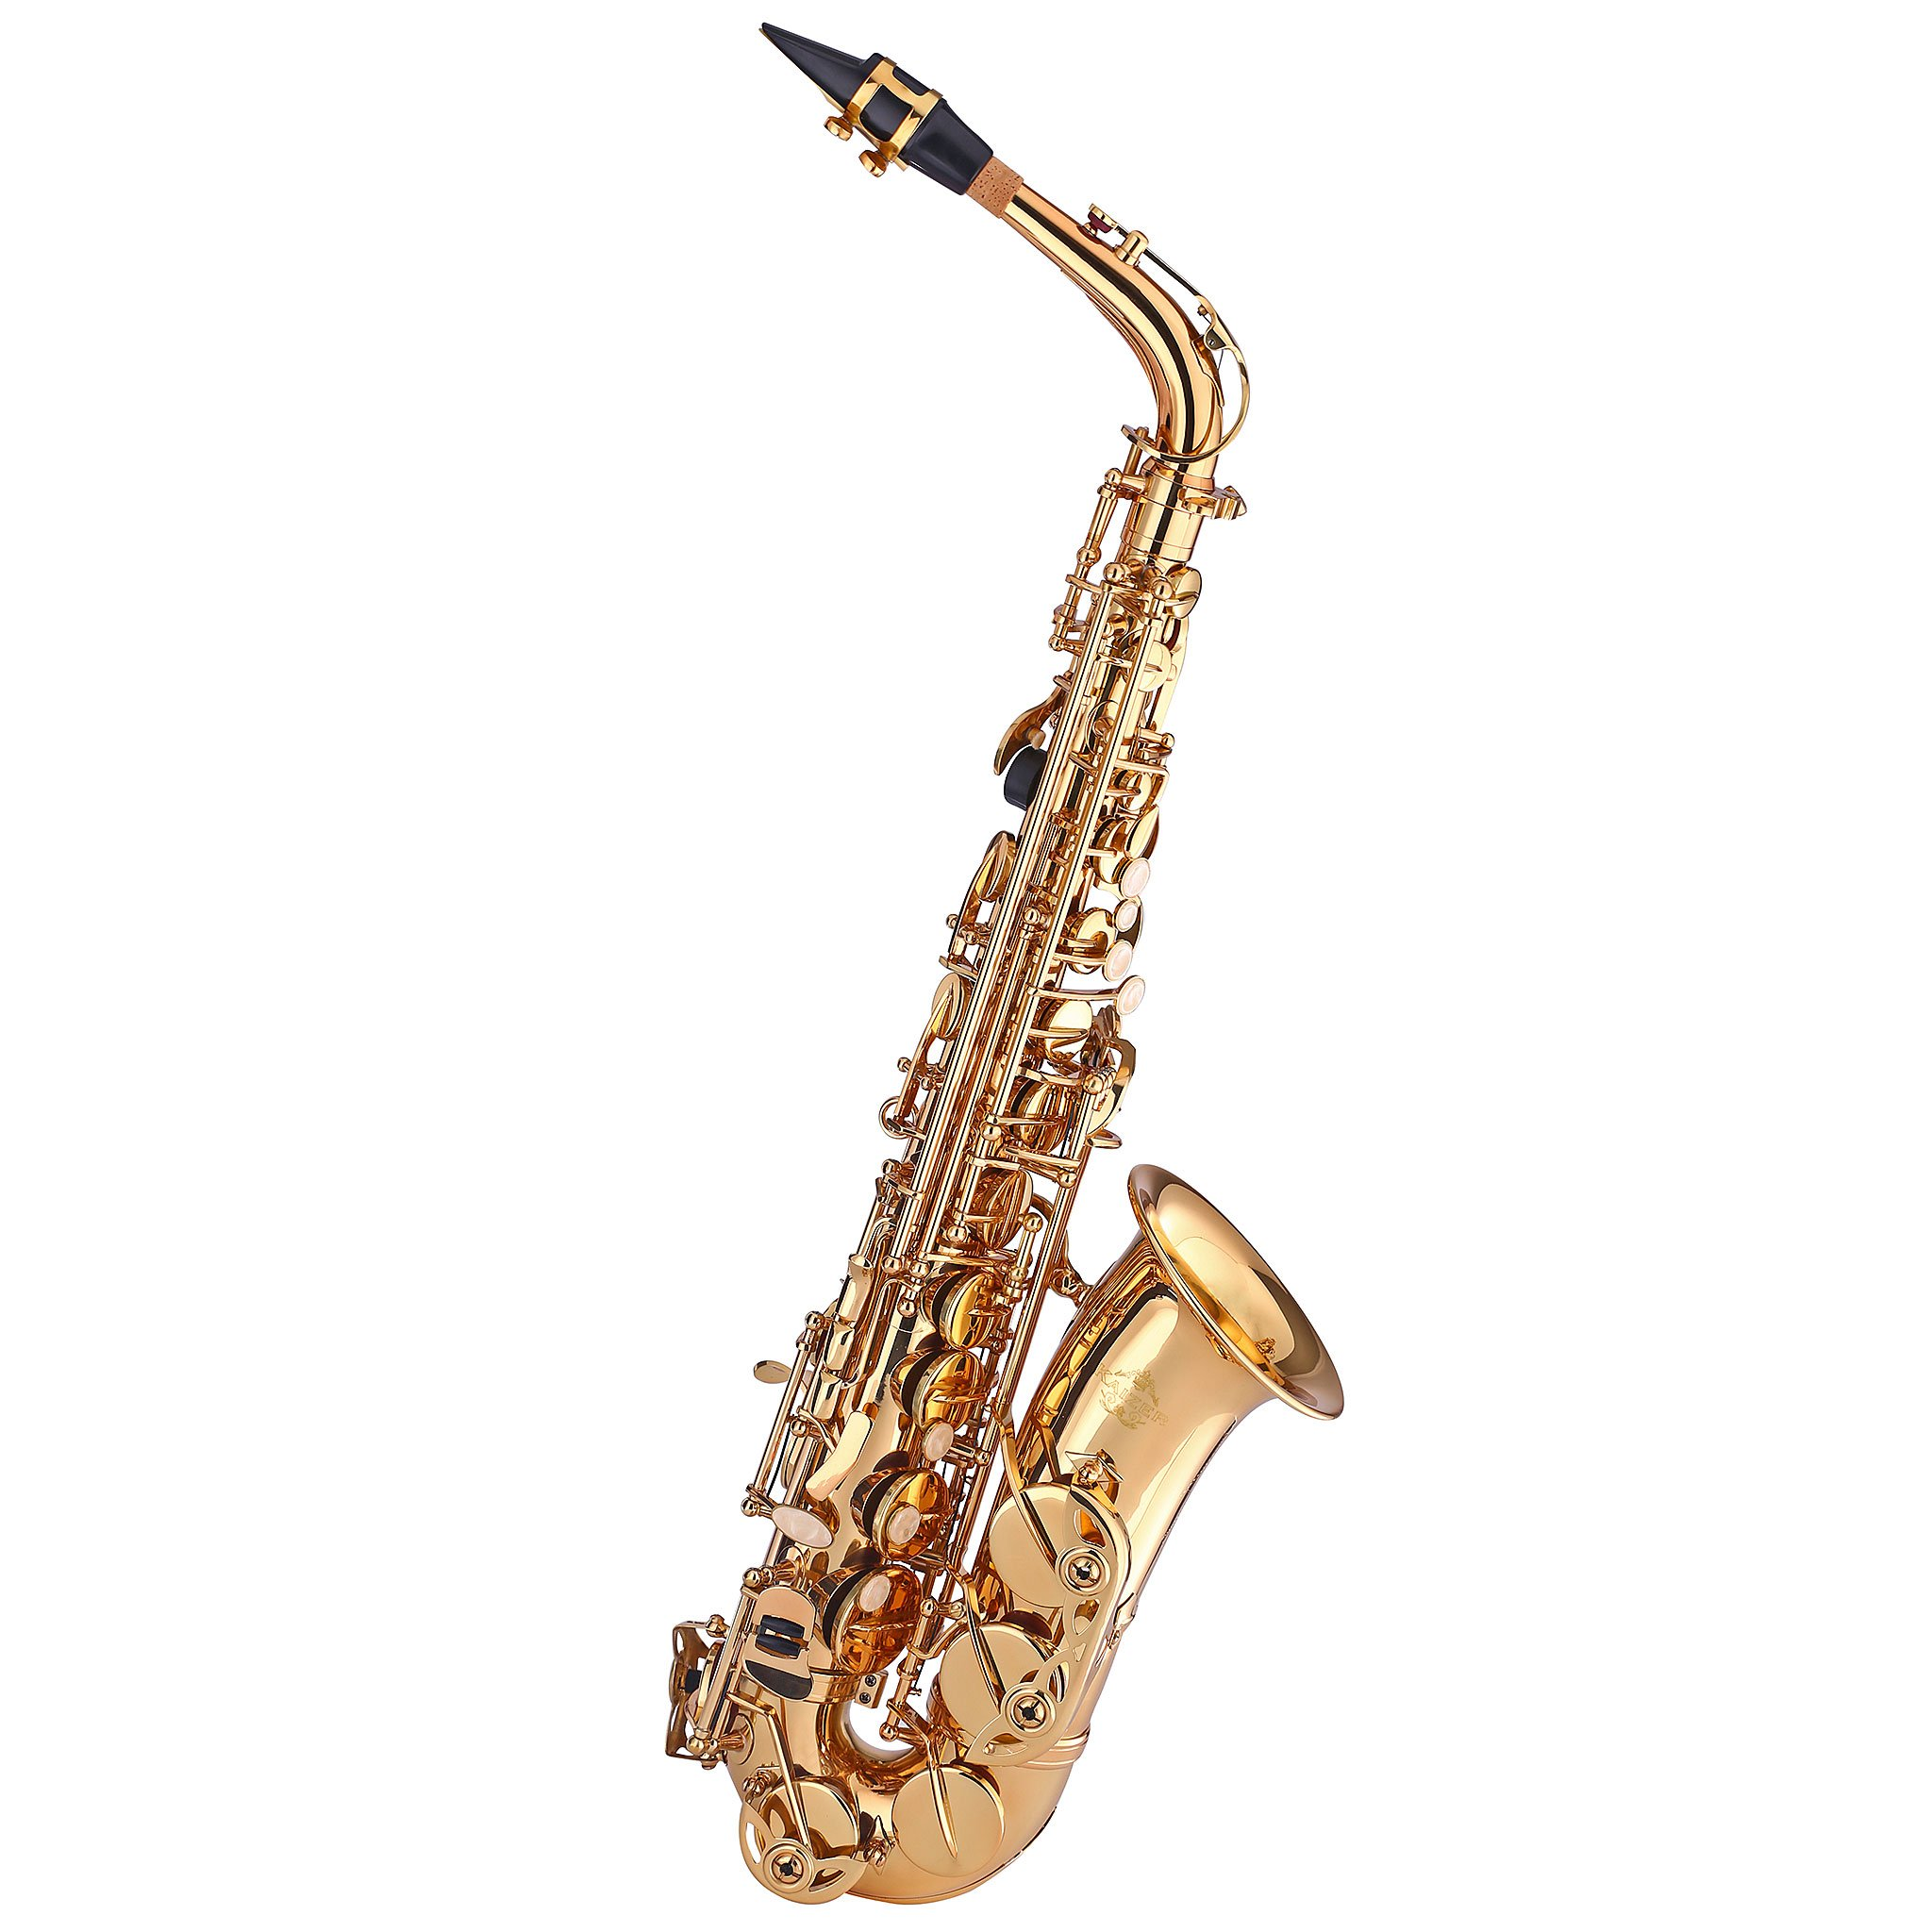 Kaizer Alto Saxophone E Flat Eb Gold Lacquer Includes Case Mouthpiece and Accessories ASAX-1000LQ by Kaizer